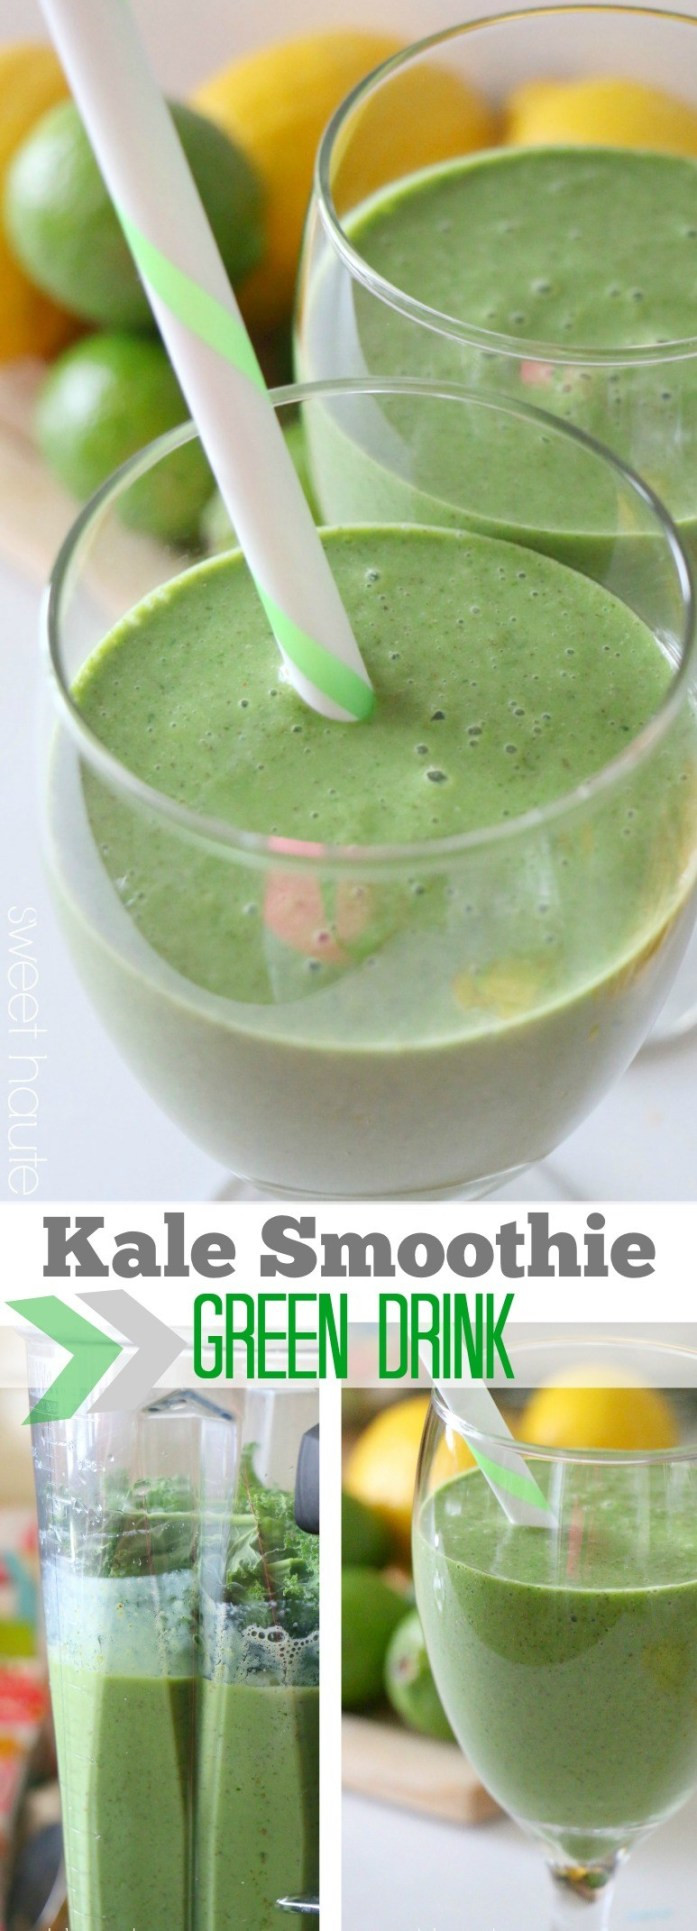 Kale Smoothie Recipes  Green Drink Kale Smoothie sweethaute